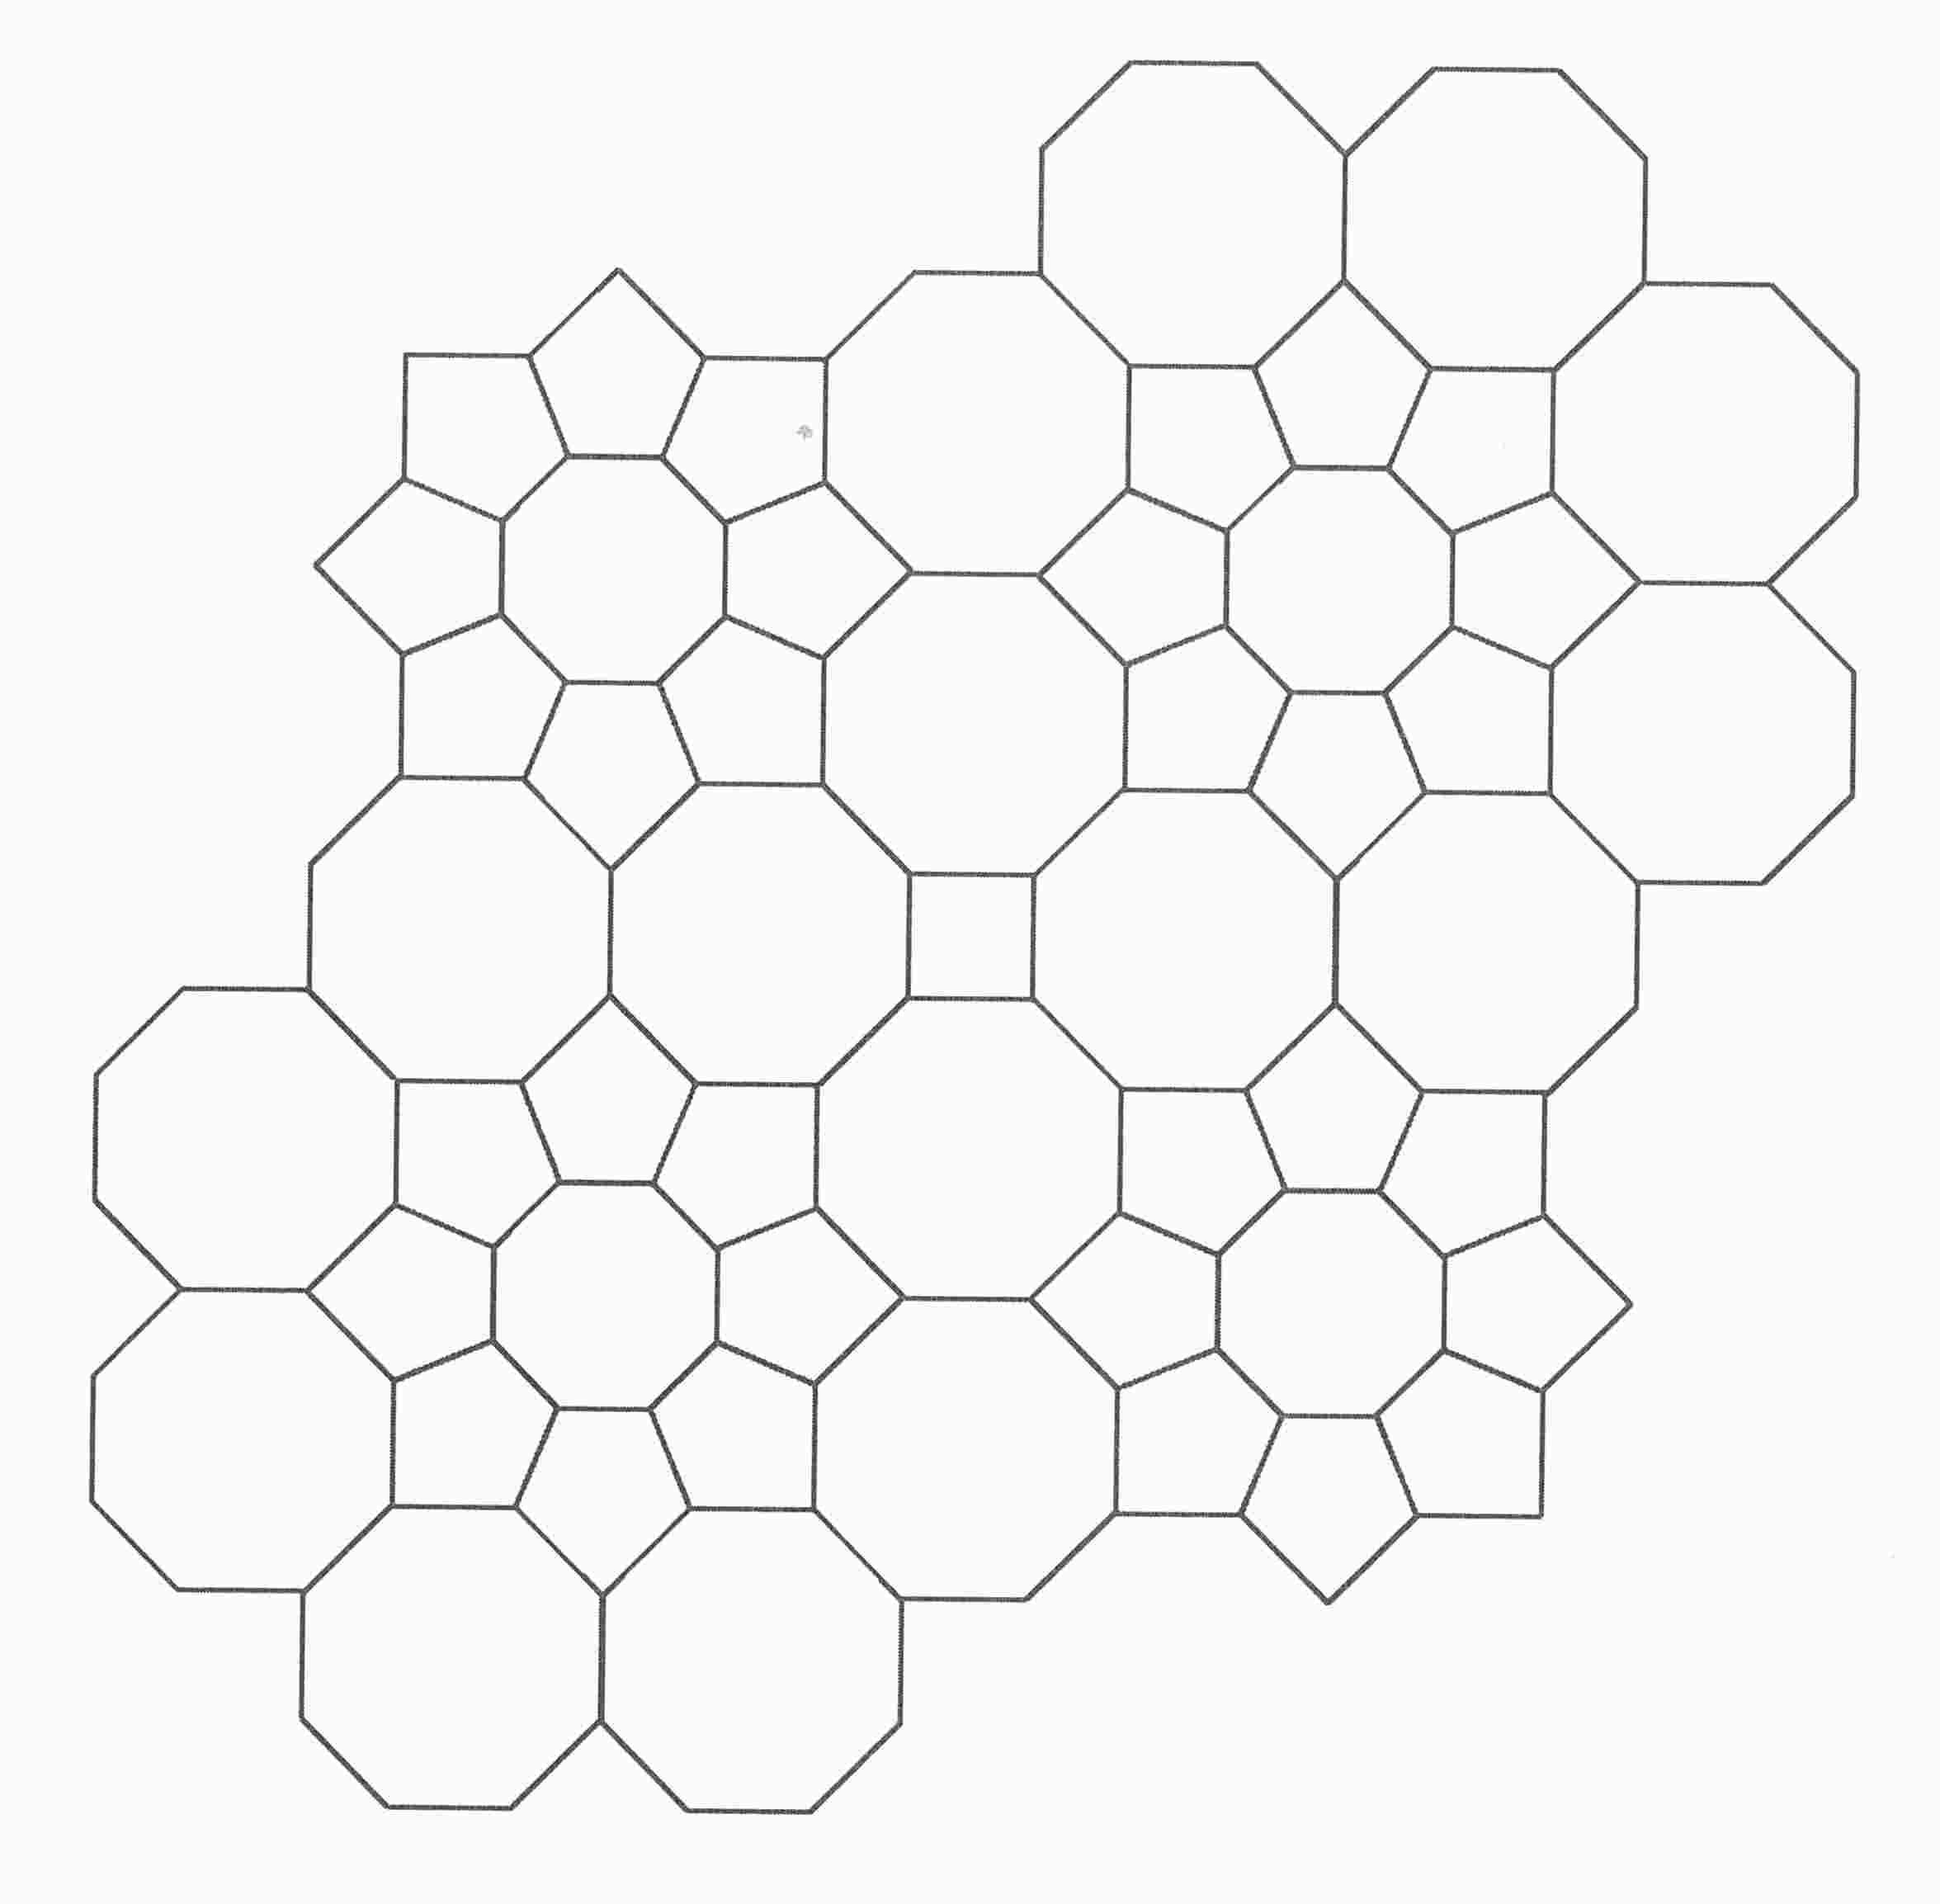 From Pretty And Useful An Awesome Octagon Based Design